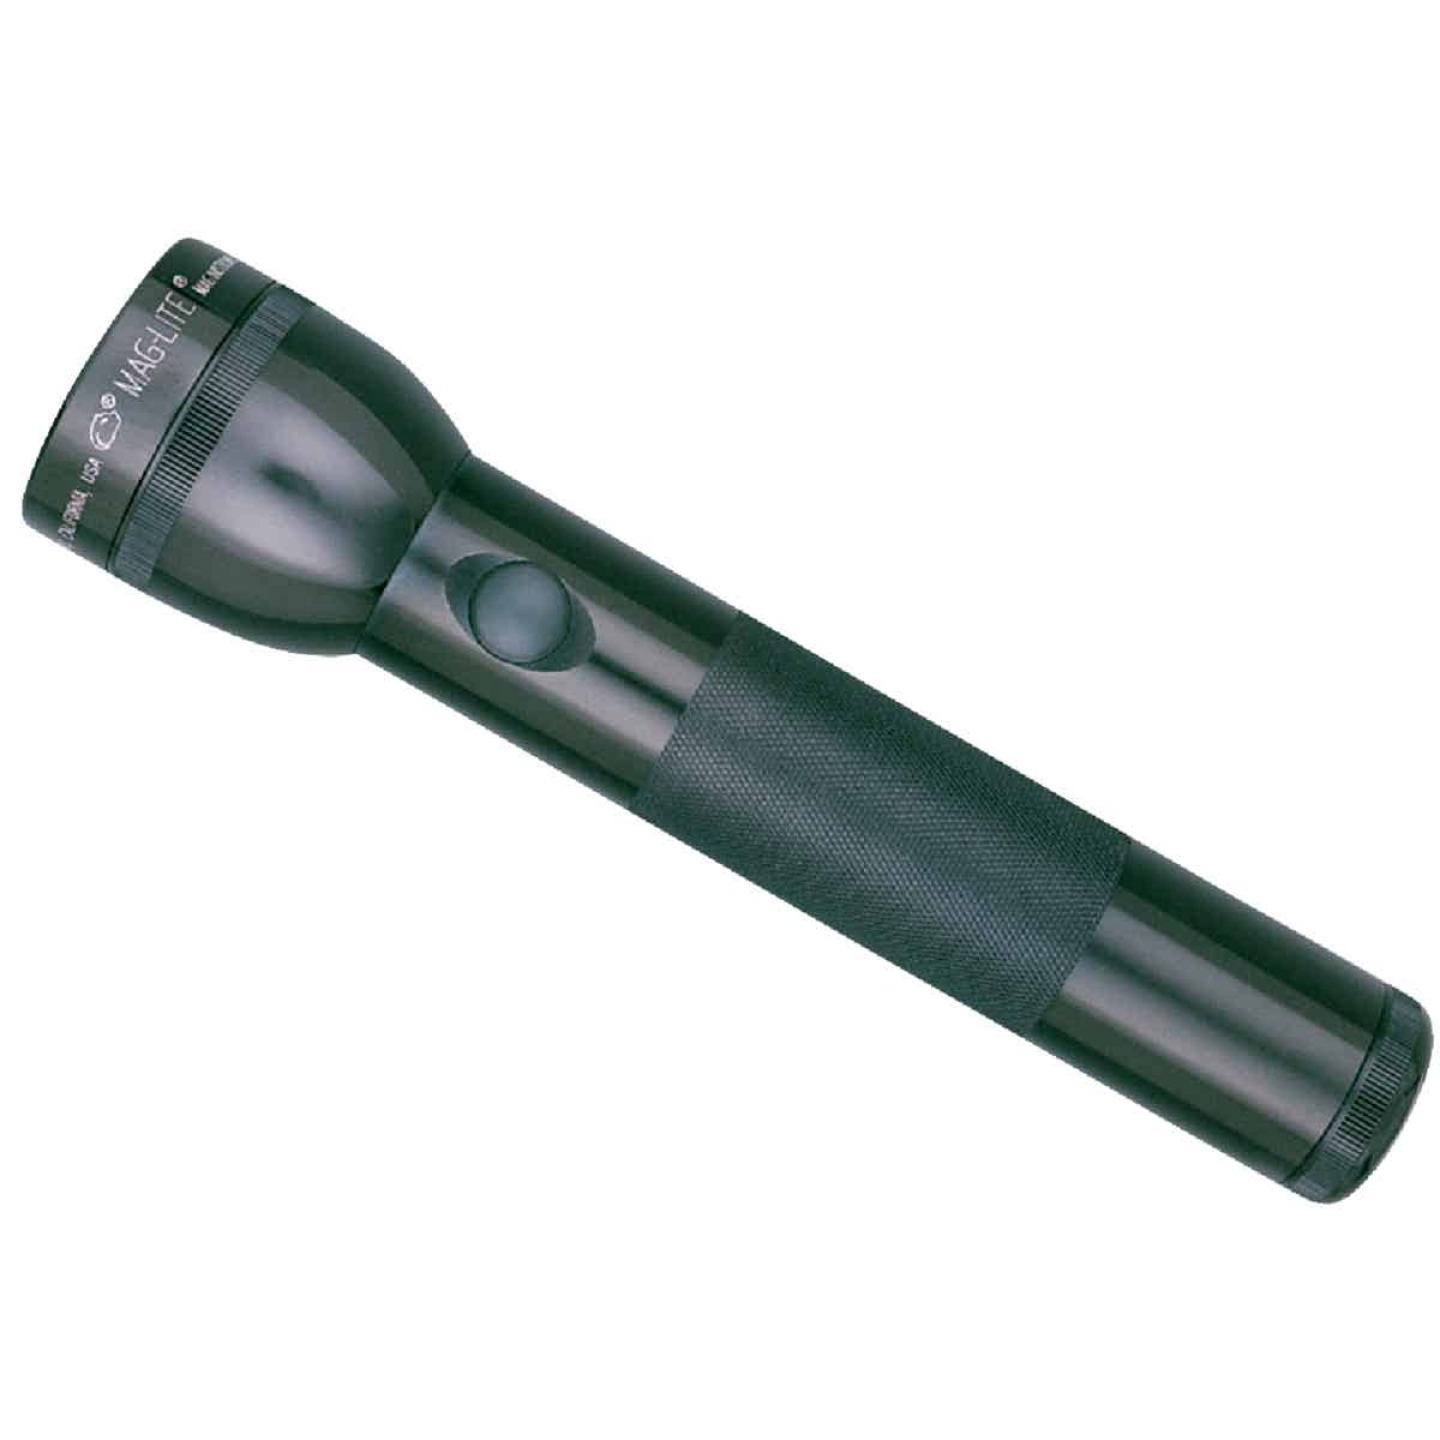 Maglite 27 Lm. Xenon 2D Flashlight, Black Image 1